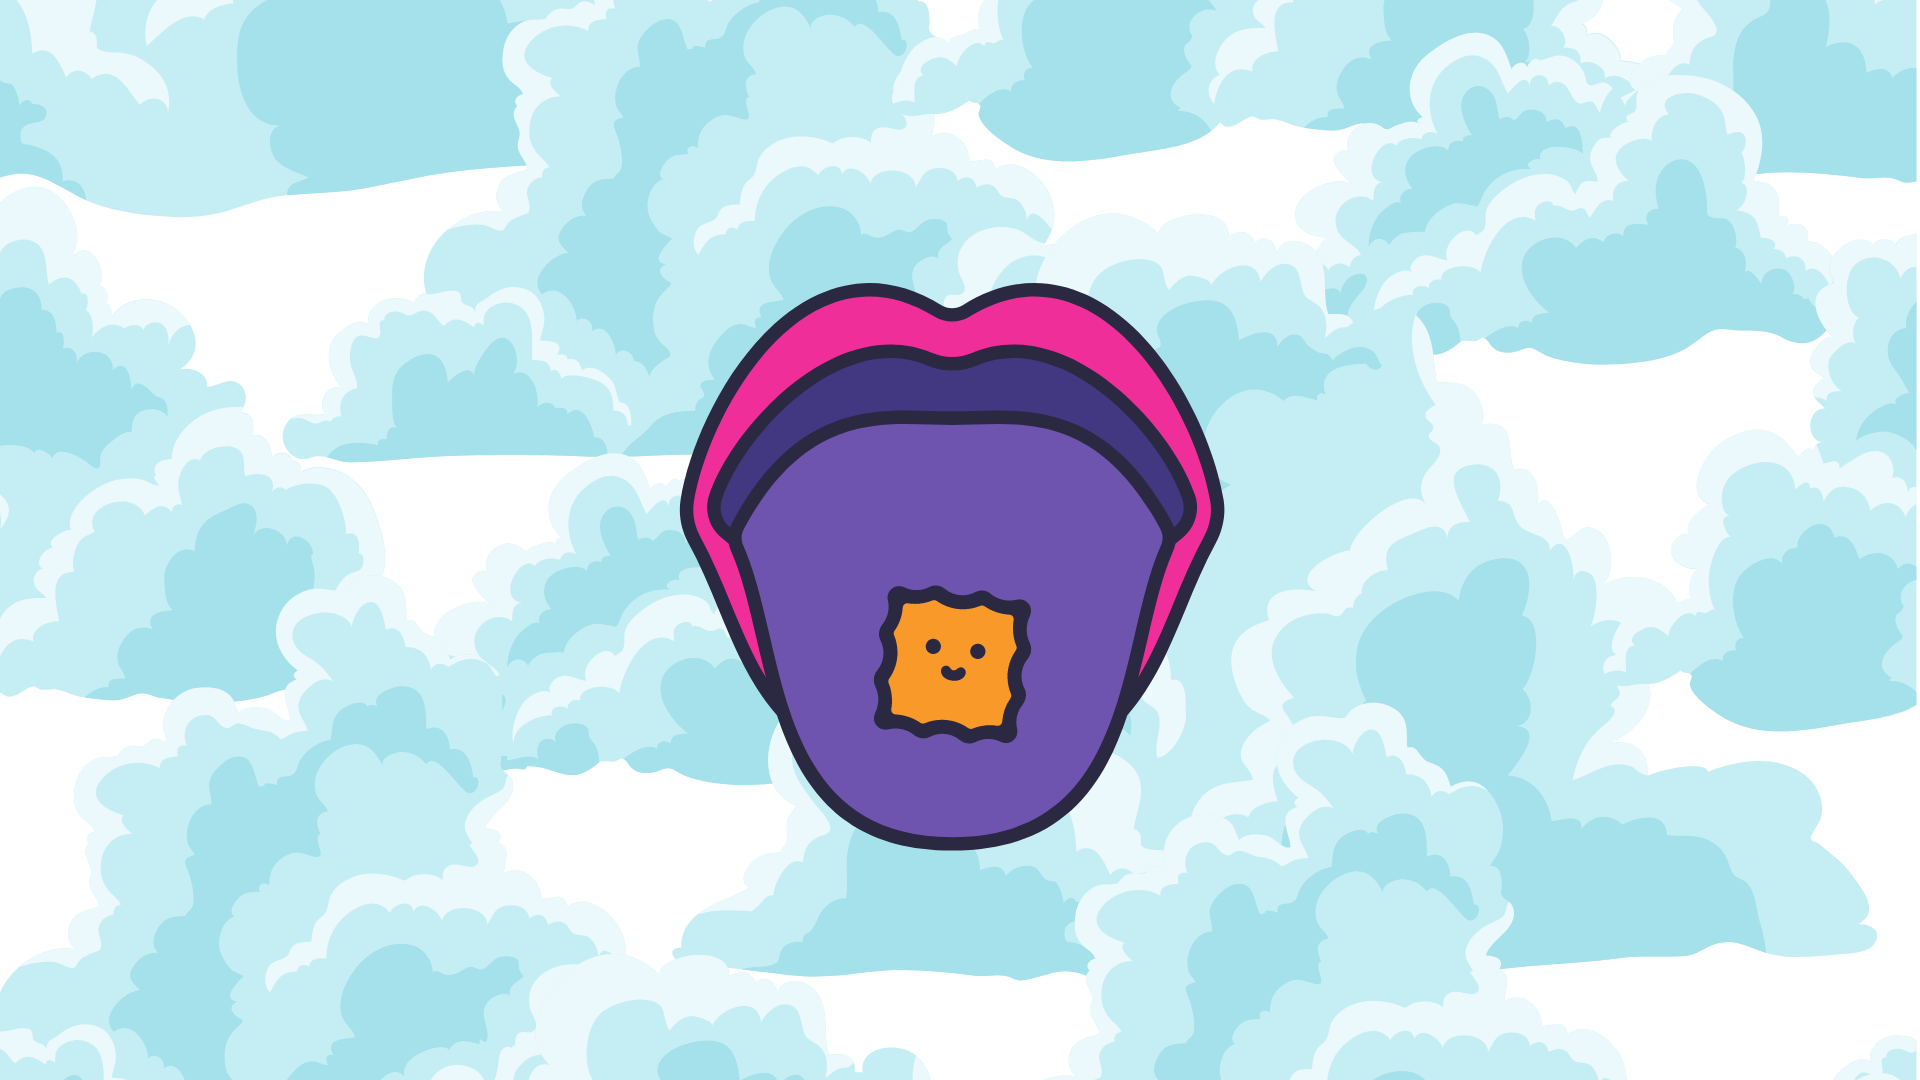 A small yellow carton on a purple tongue and a mouth. The background is sky-blue.